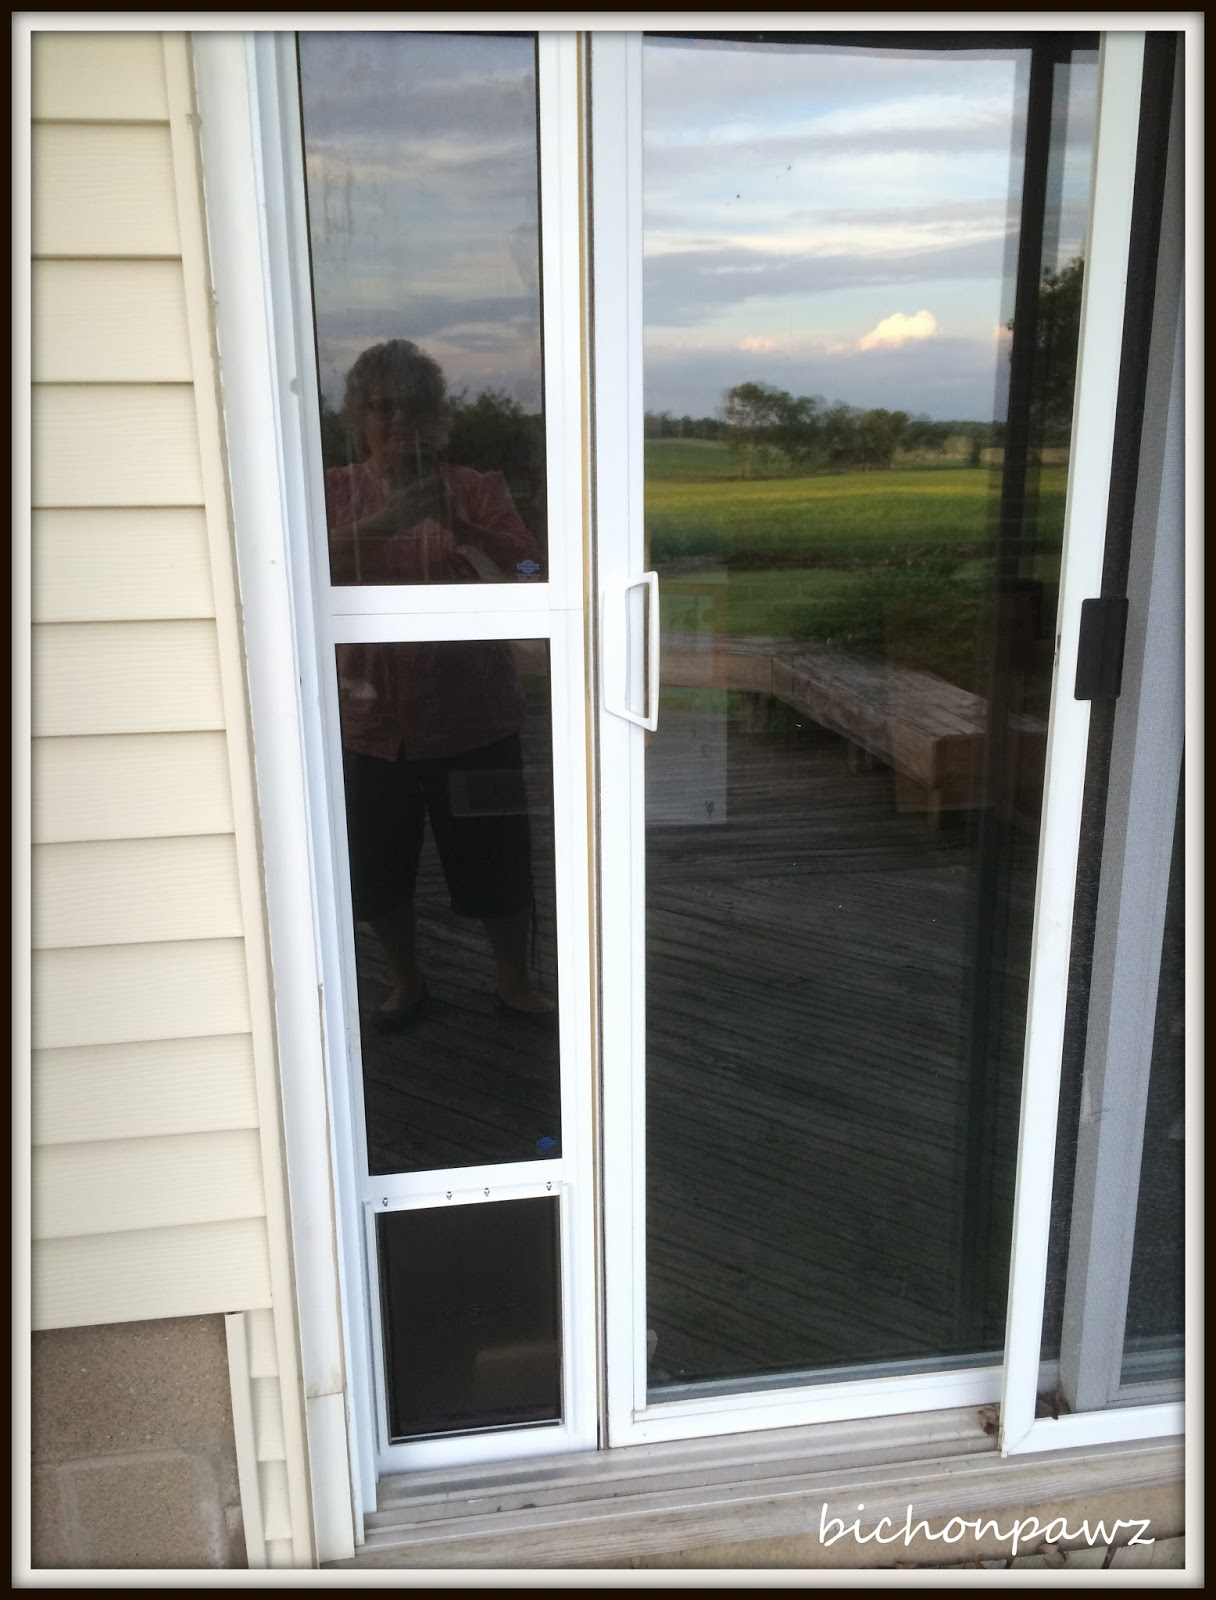 bichonpawz: #PetSafe Sliding Glass Pet Door Giveaway!!